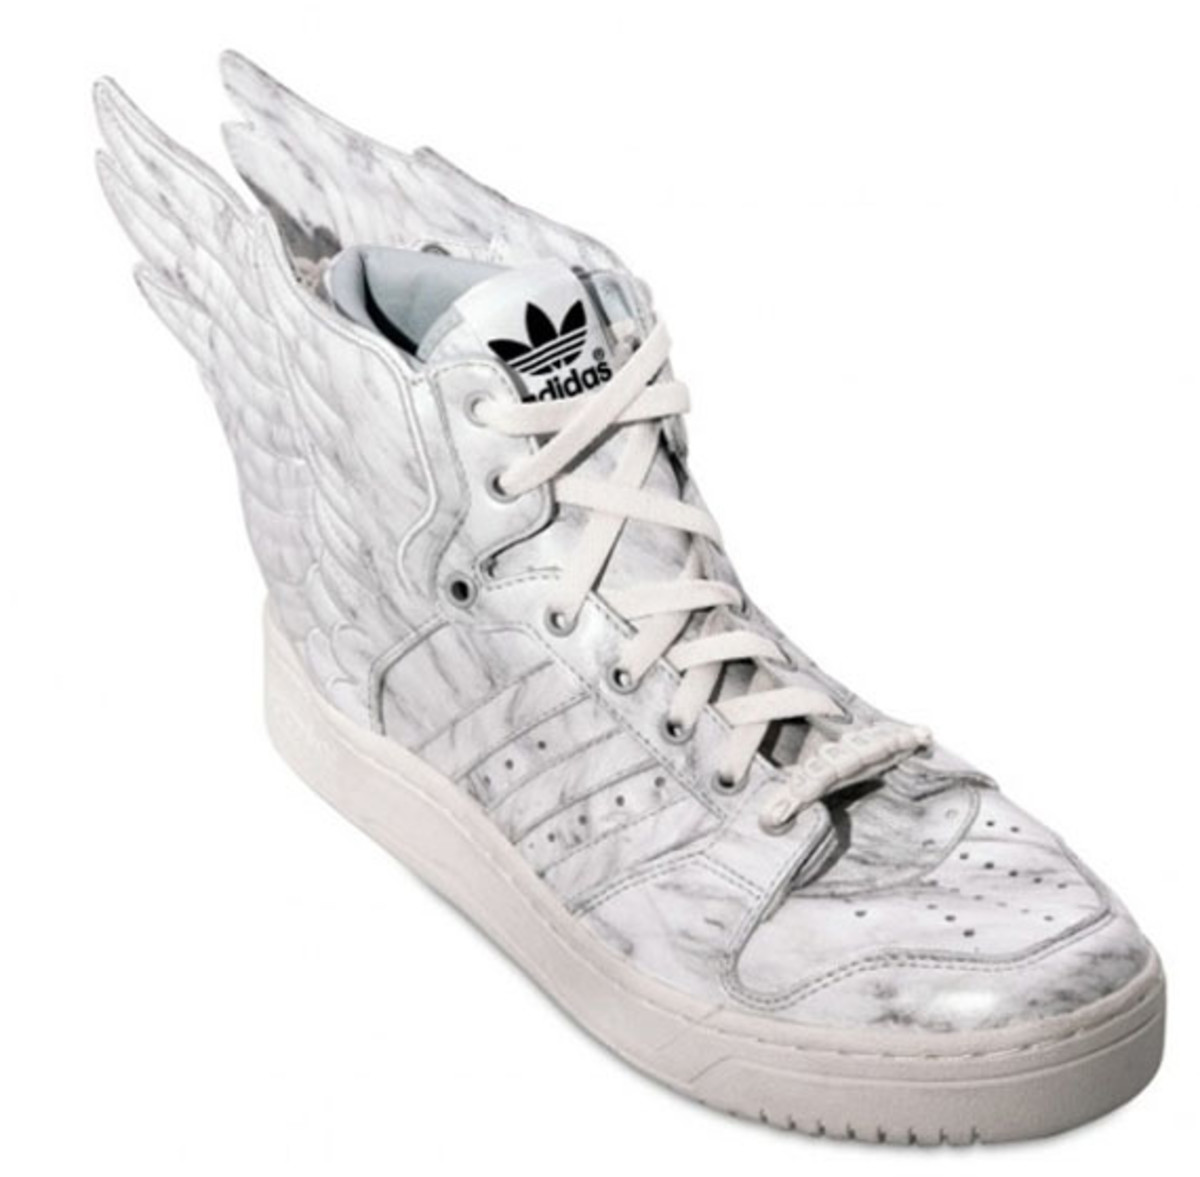 adidas-originals-by-originals-jeremy-scott-fw10-leather-wings-marble-2